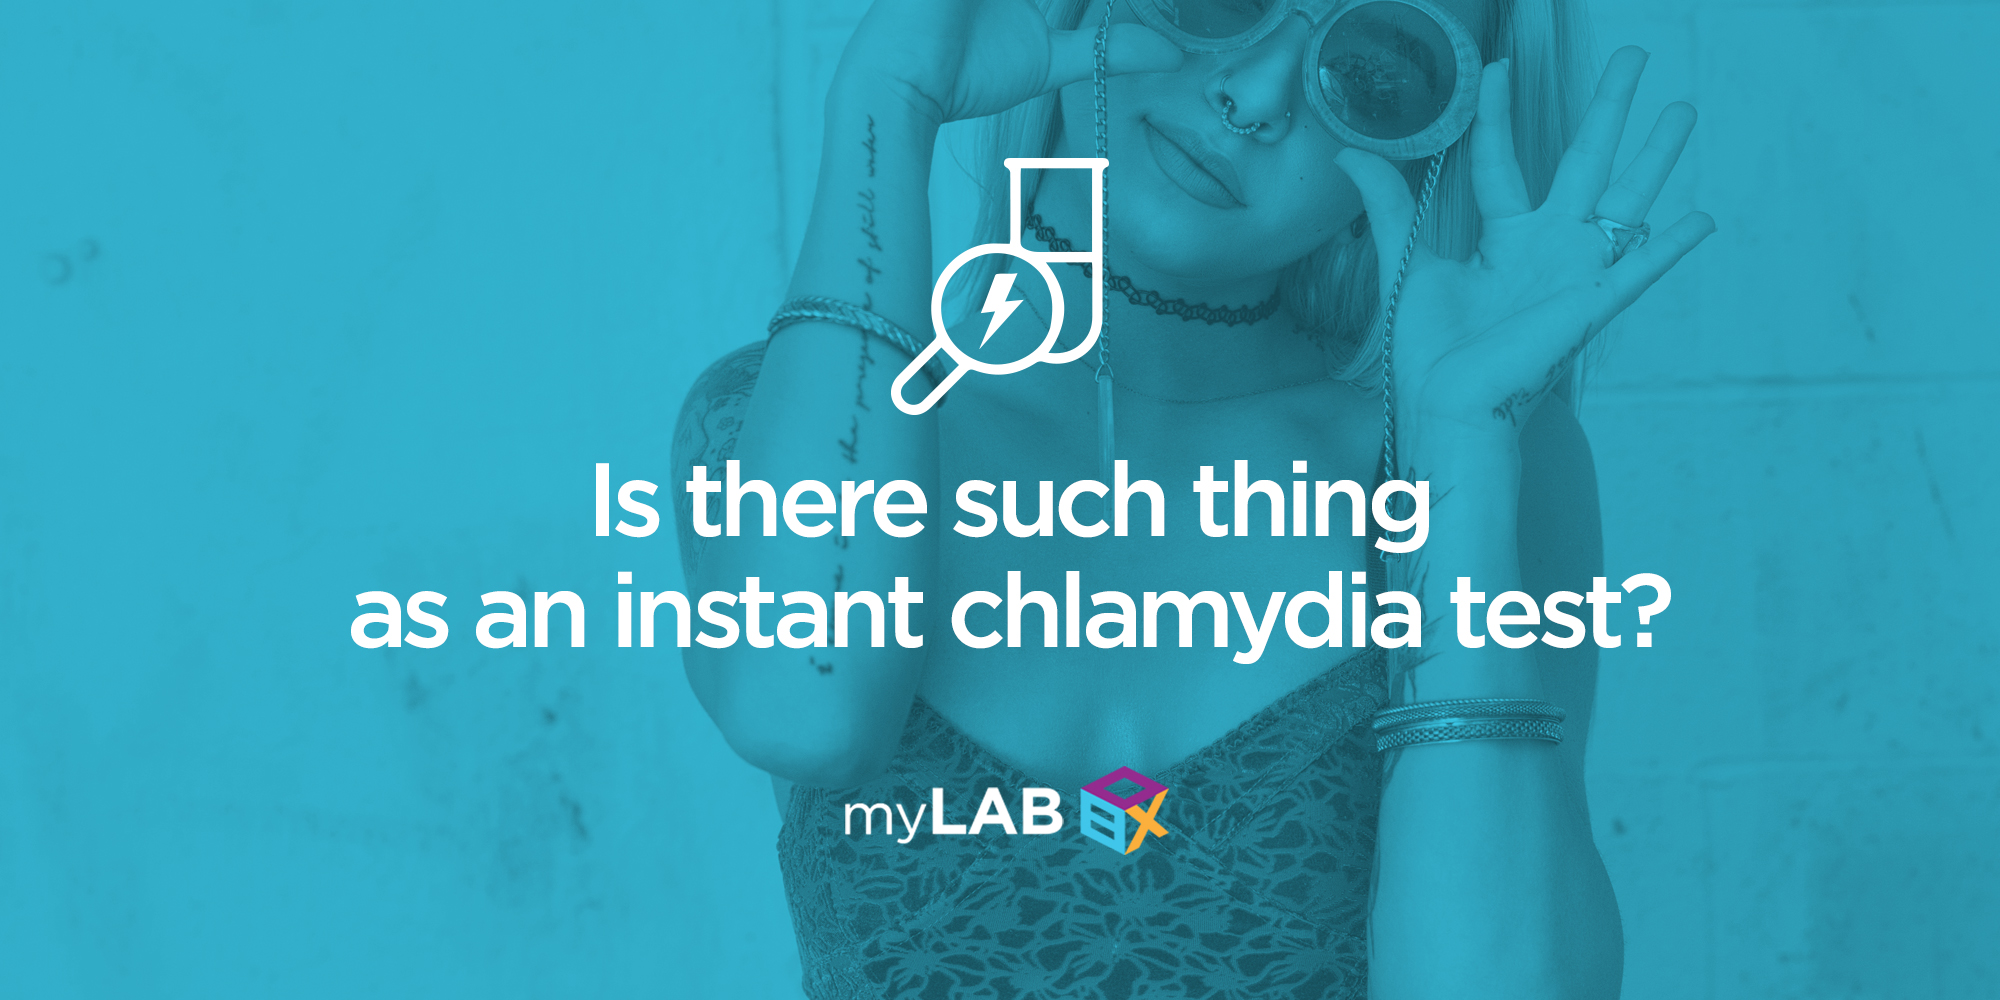 Is There Such Thing as an Instant Chlamydia Test?